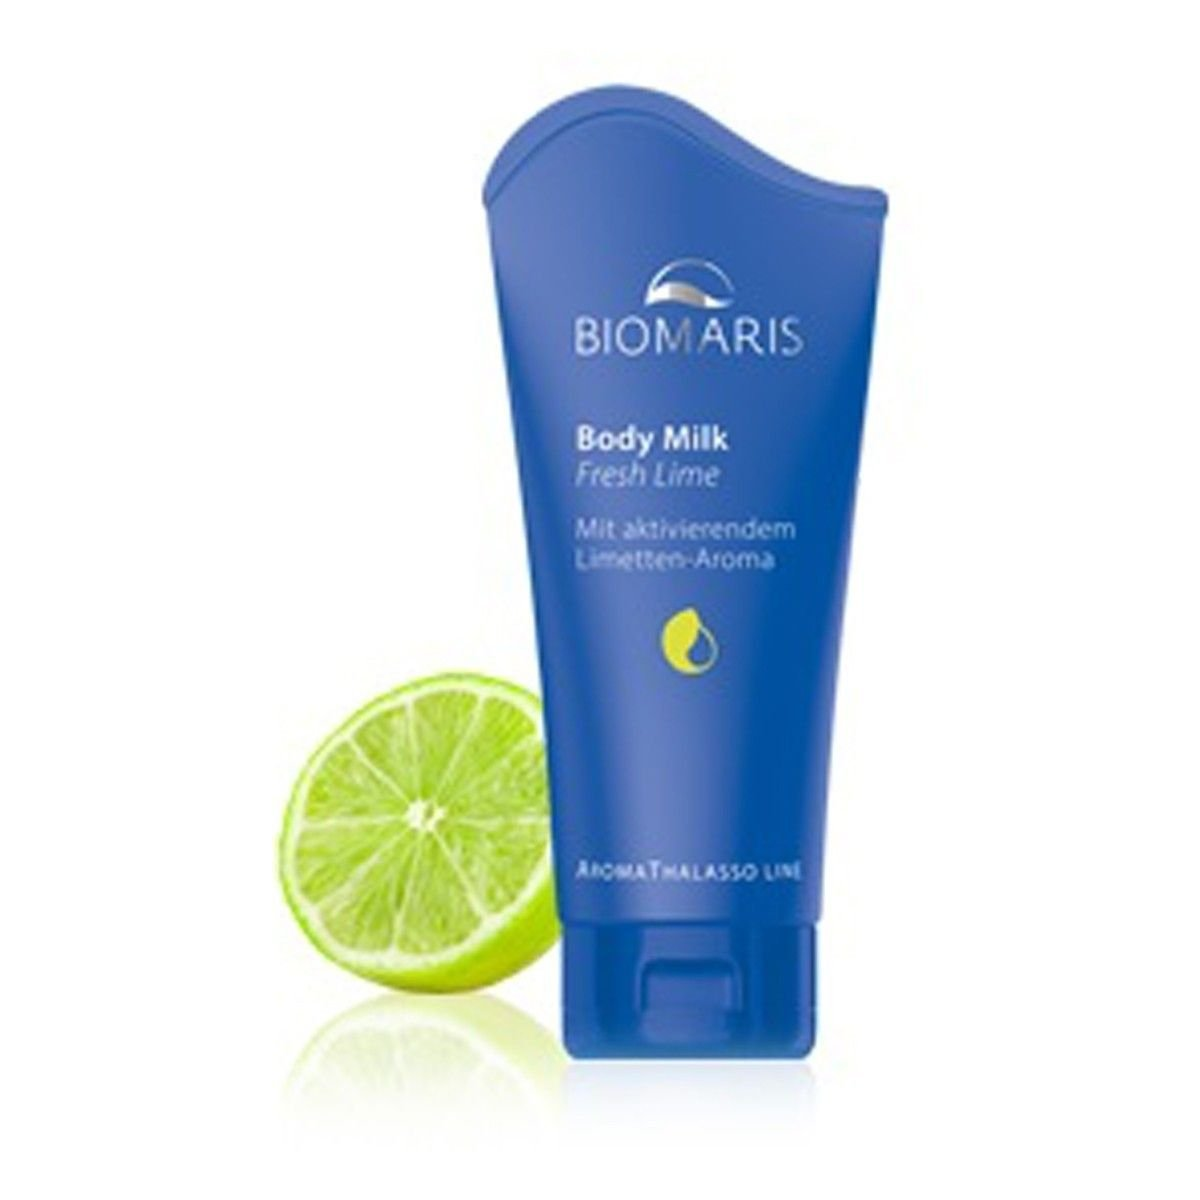 Afbeelding van Biomaris Body Milk Fresh Lime Aroma Thalasso Line Beauty